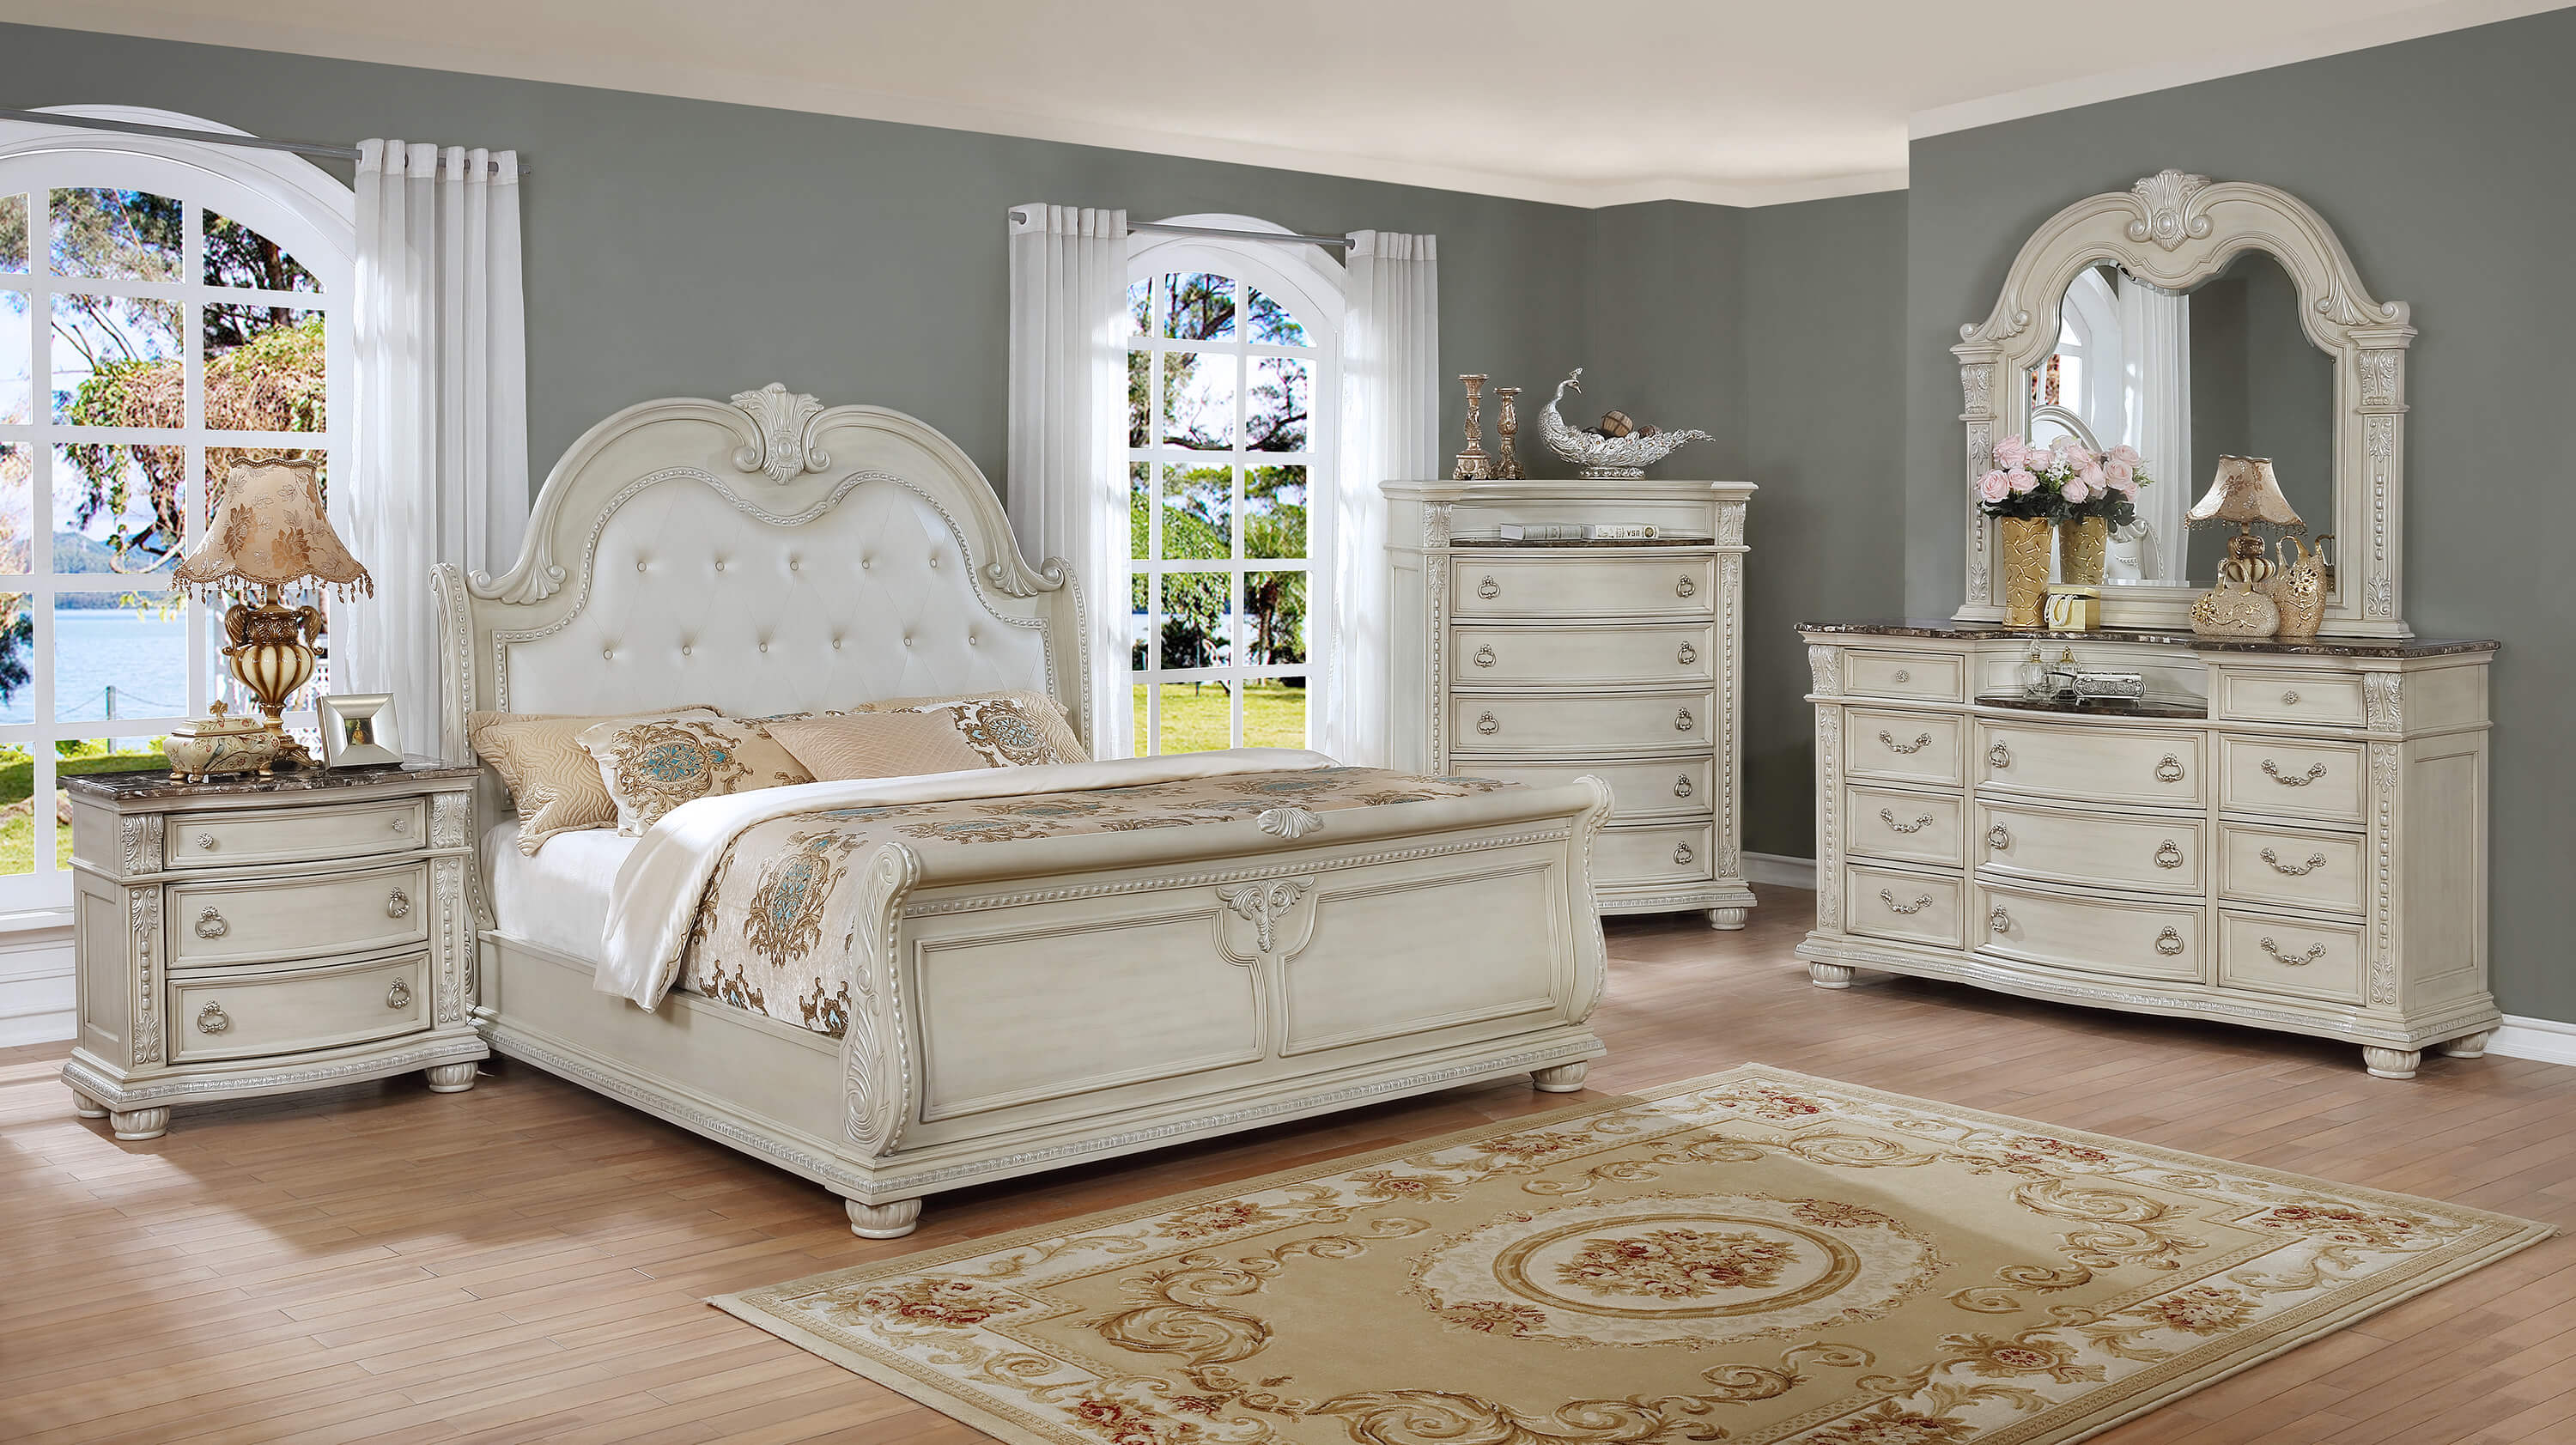 Prime B1630 Stanley Antique White Marble Bedroom Set By Crown Mark Download Free Architecture Designs Rallybritishbridgeorg